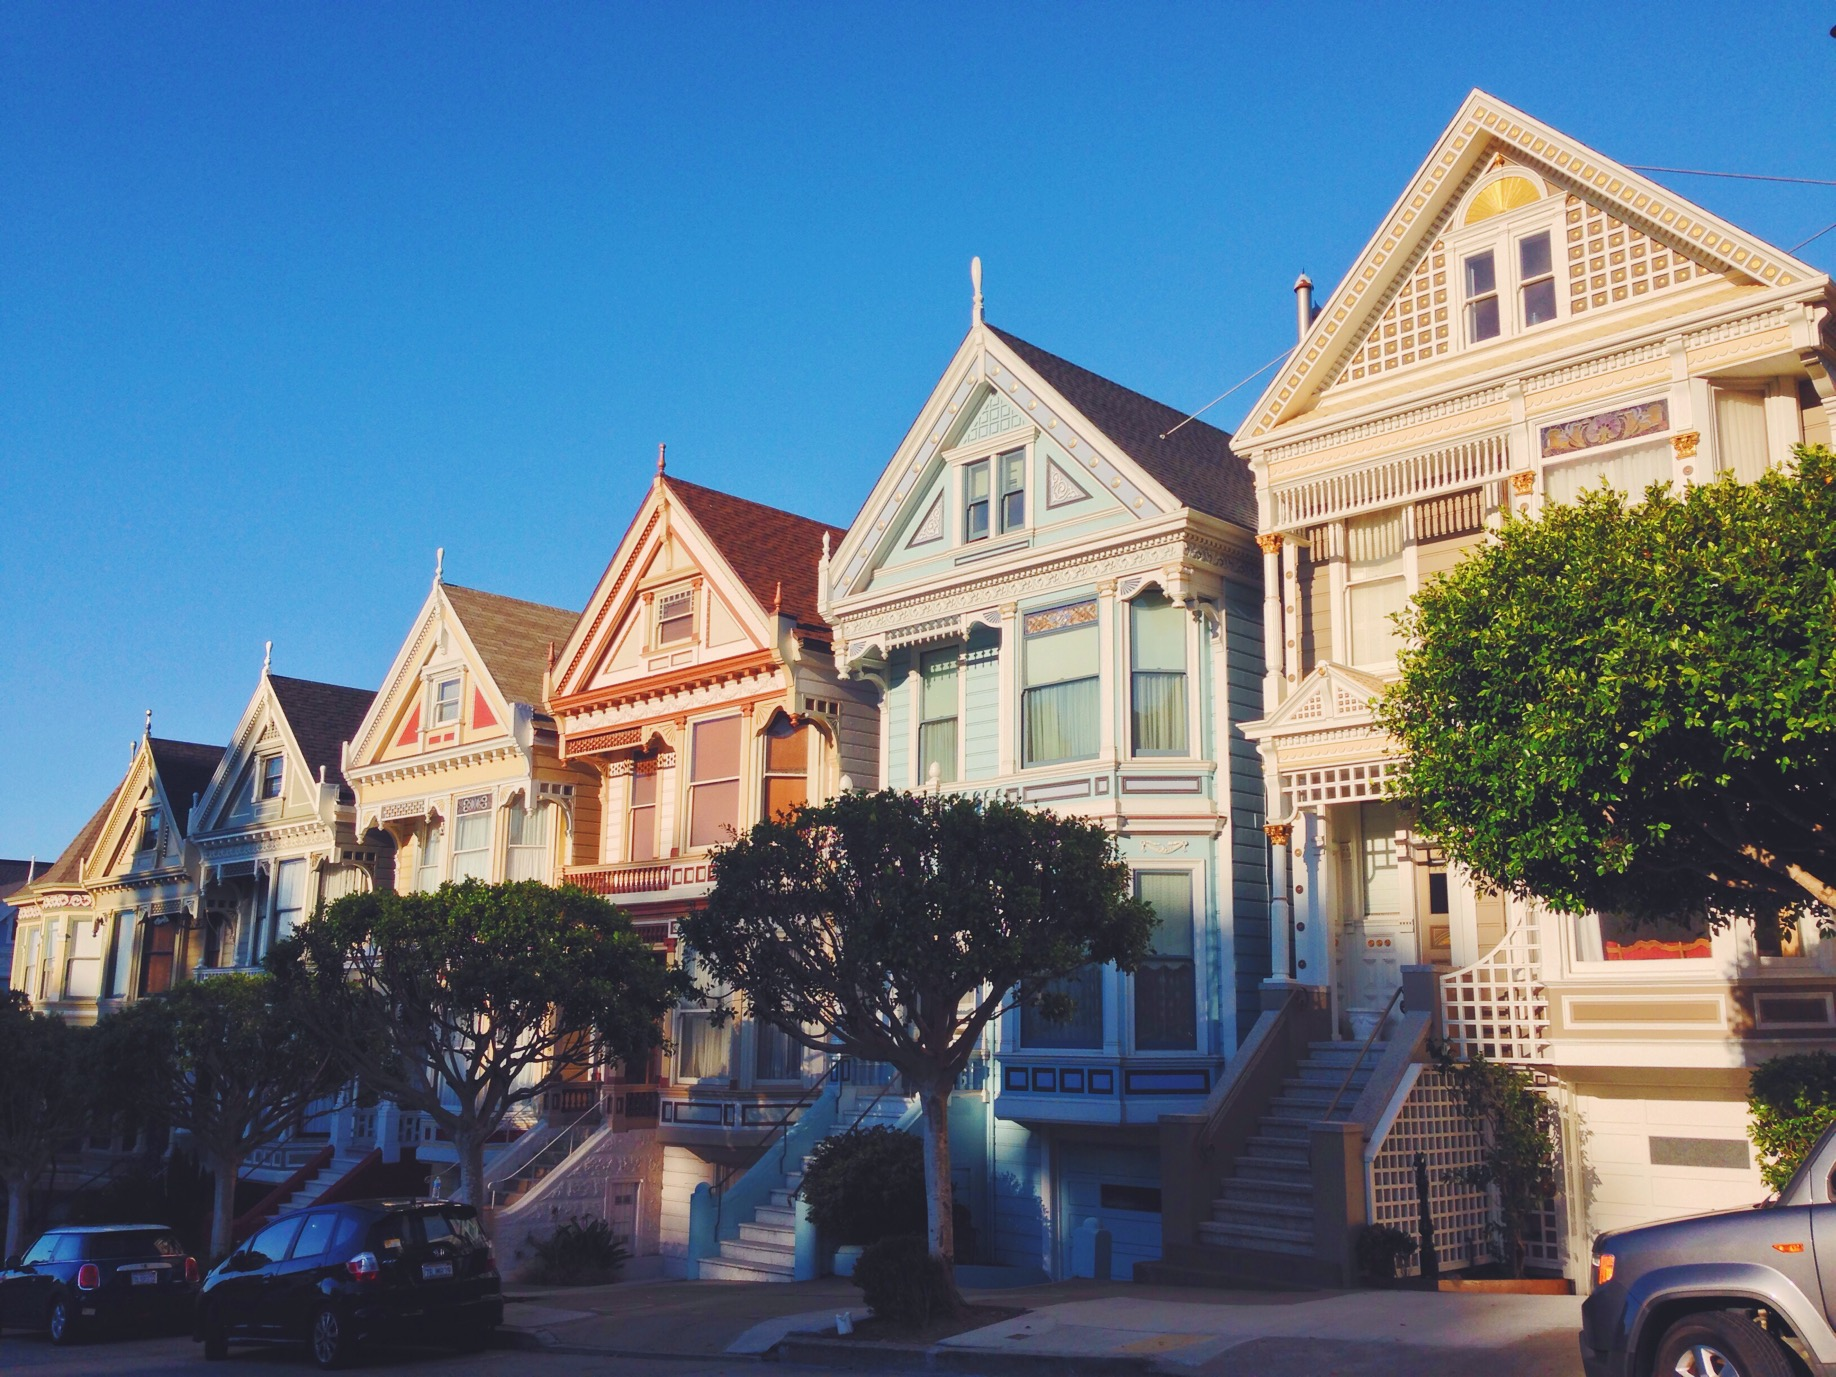 Painted Ladies, le case colorate di San Francisco